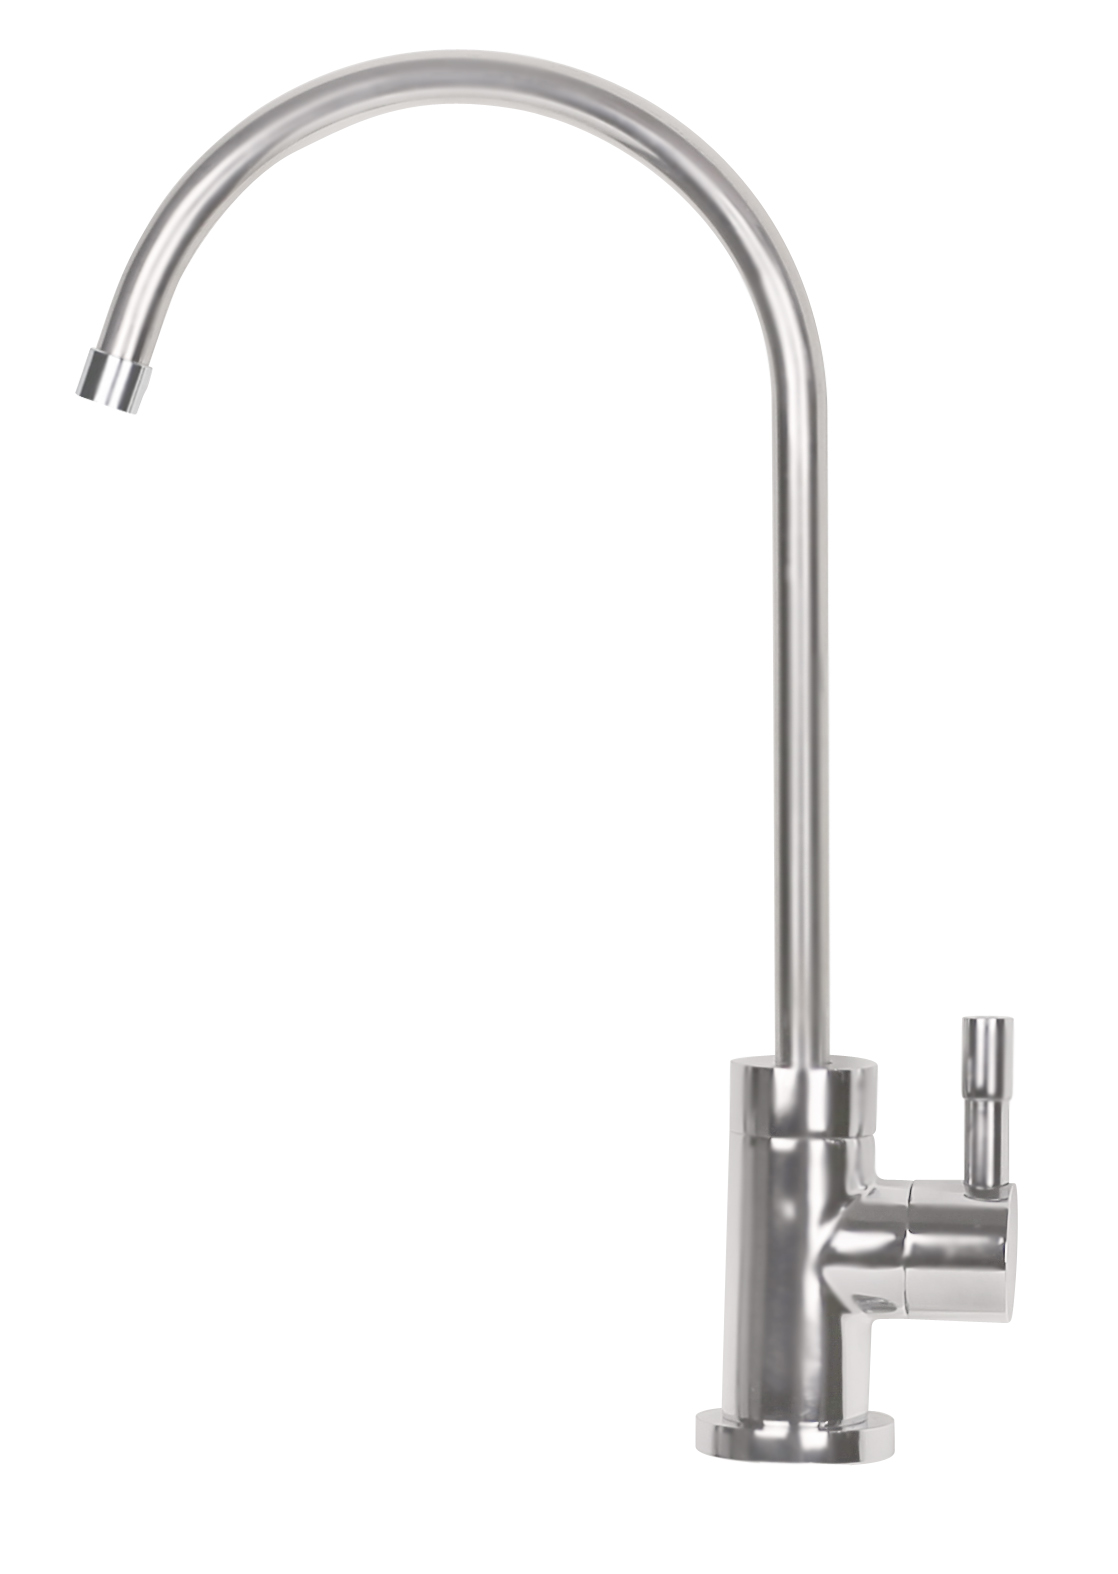 1050BNP brushed nickel faucet